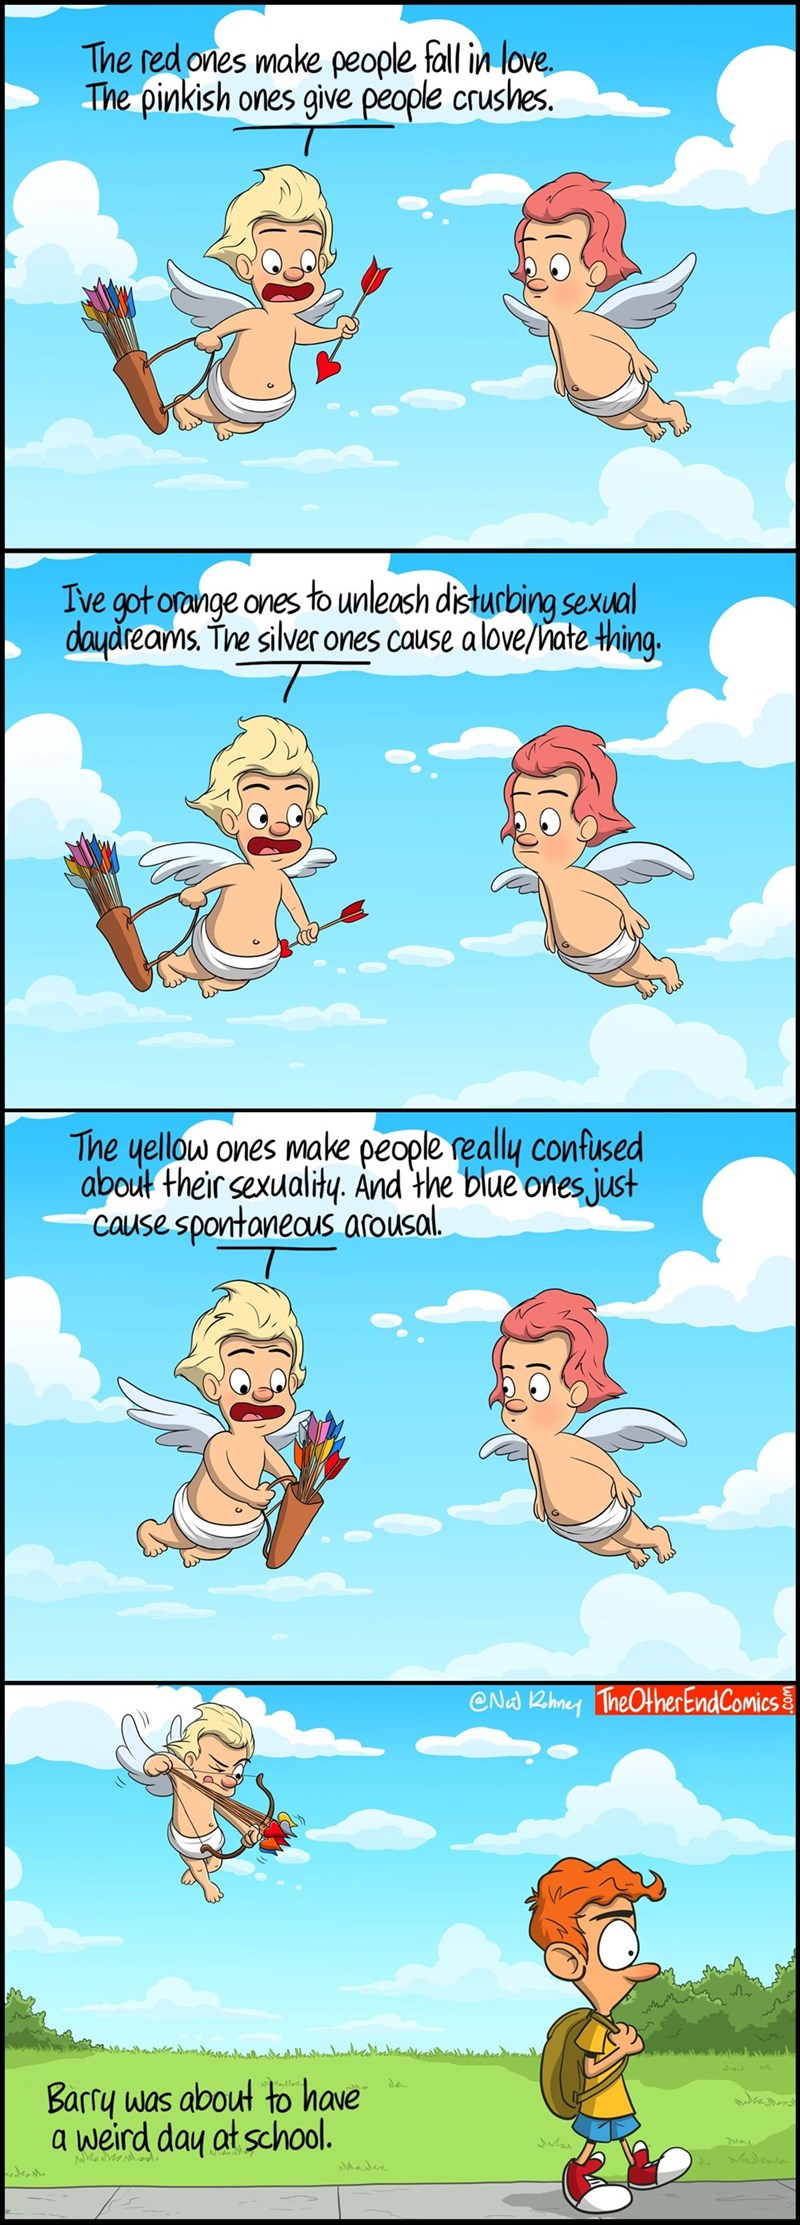 web comics cupid growing up Ah, Puberty